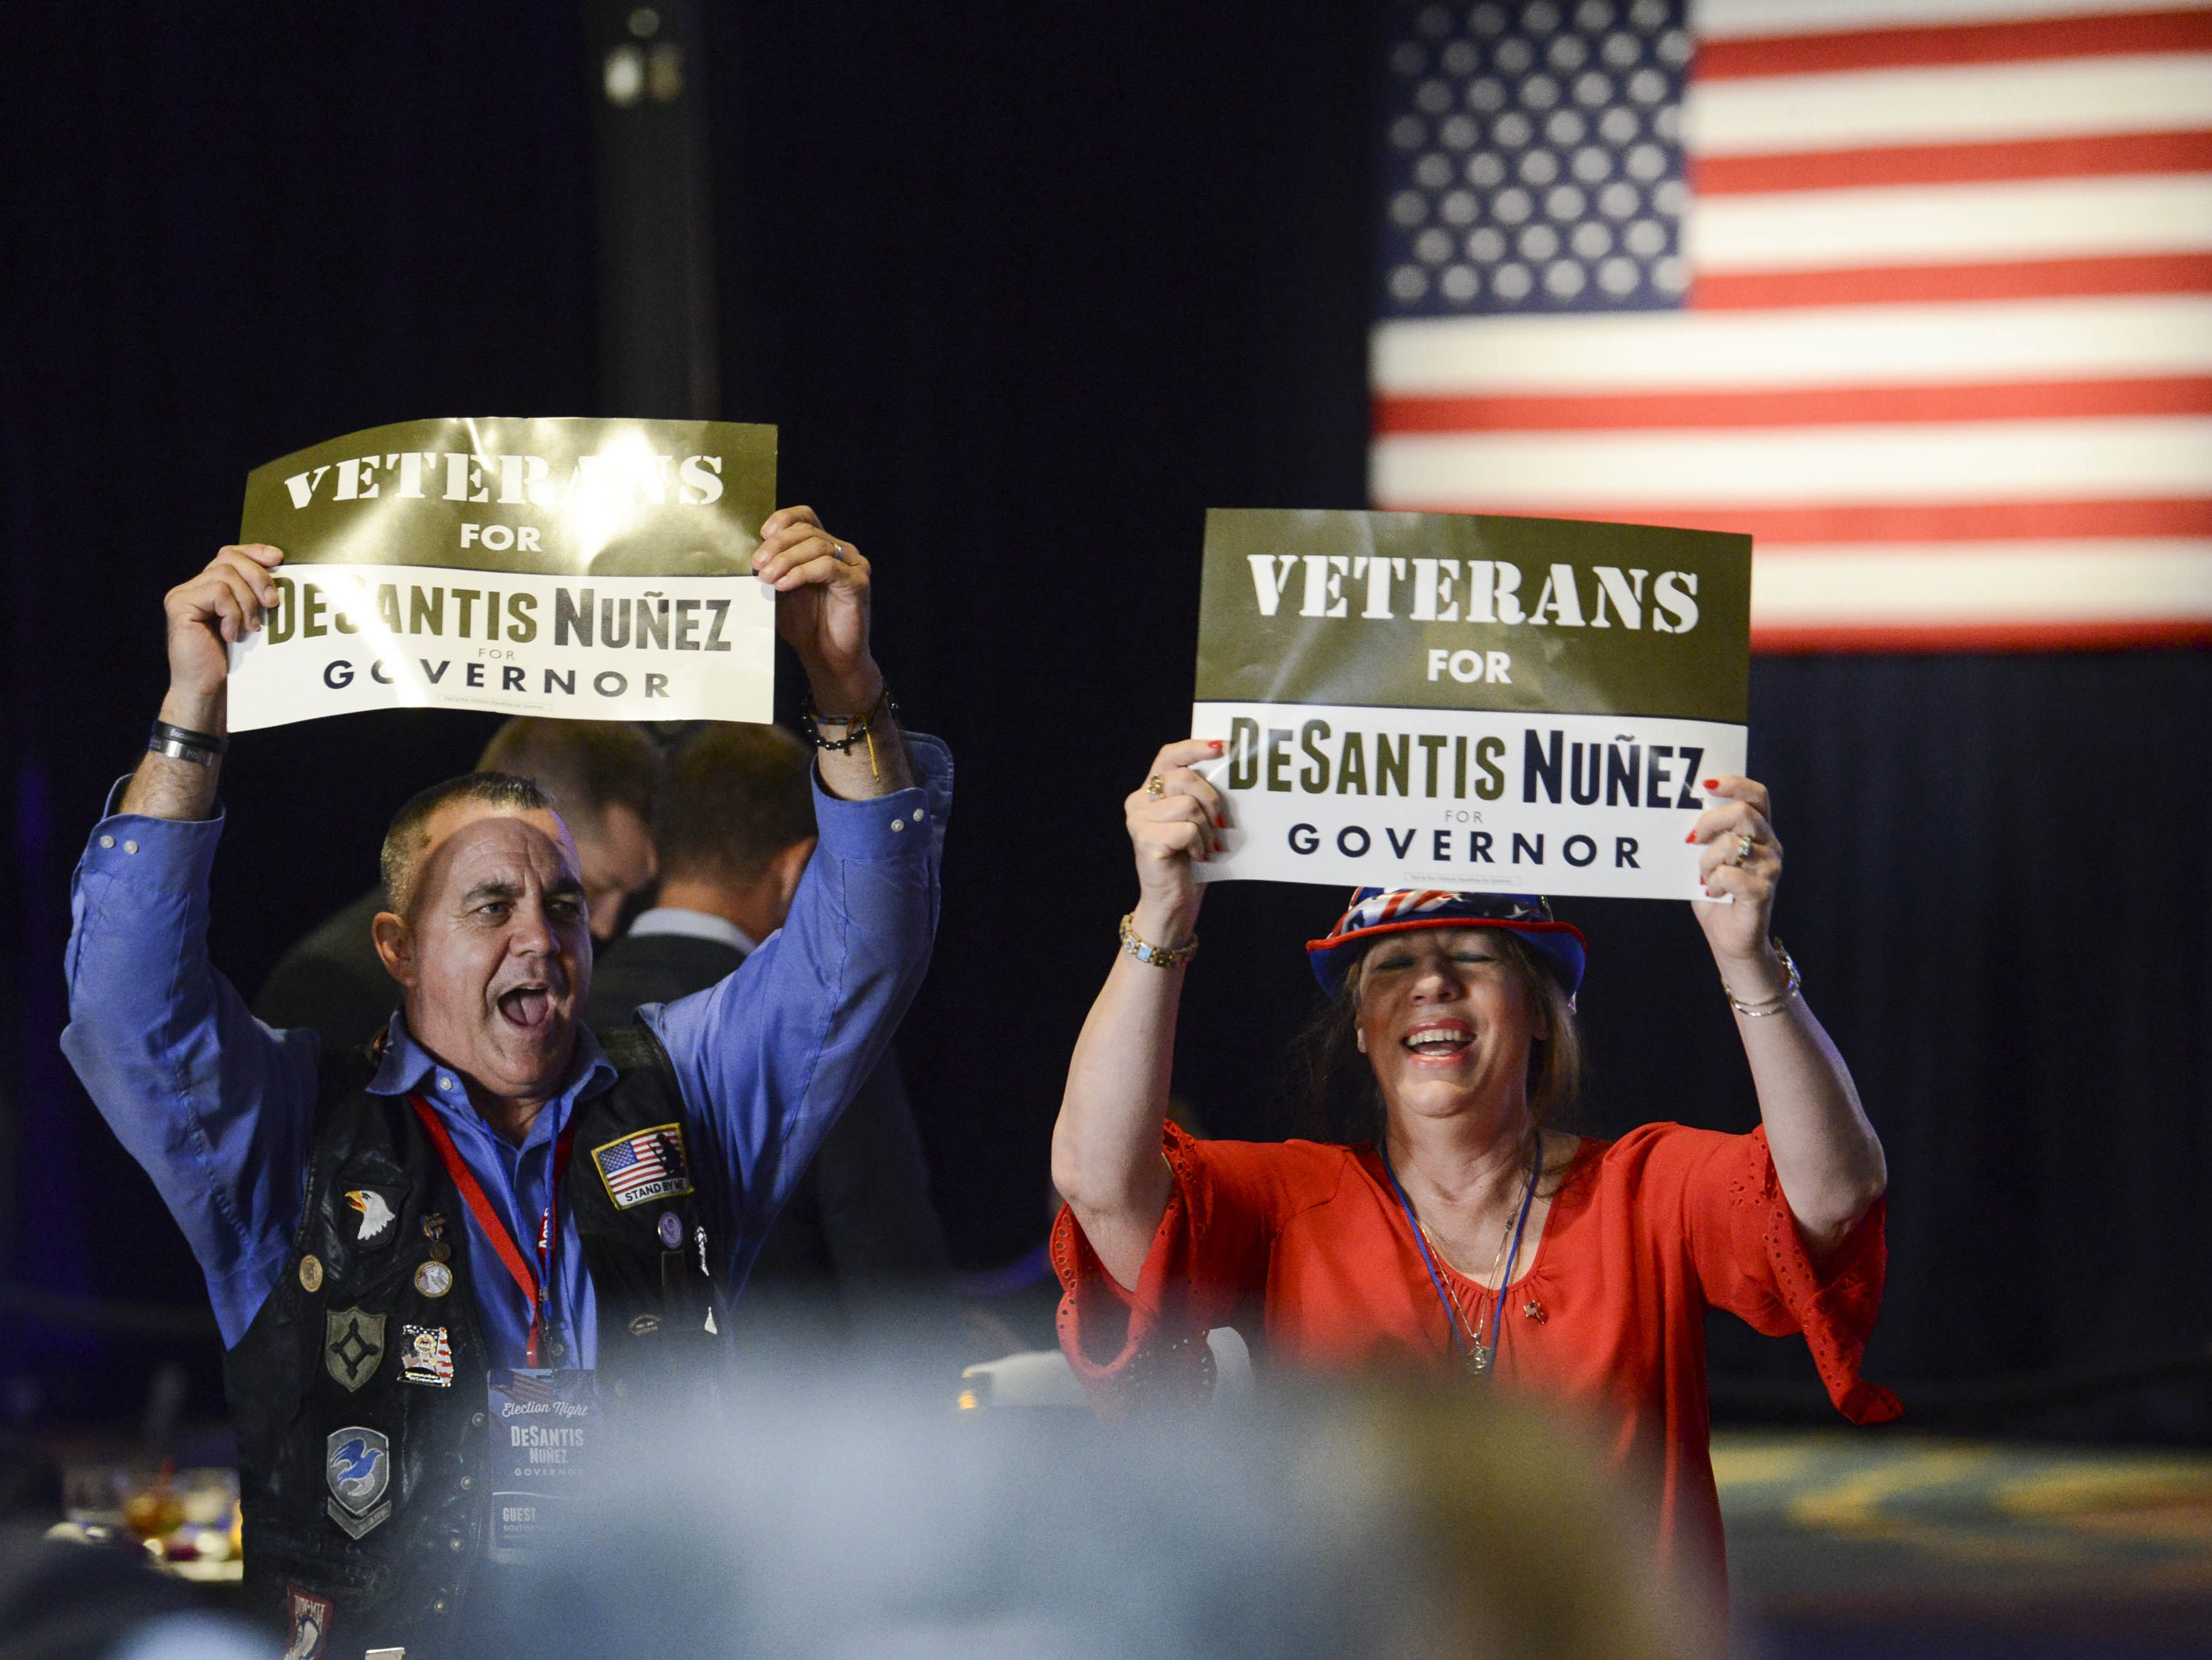 Ron DeSantis supporters wave signs during DeSantis' election watch party in Orlando. Early results give him a slight edge in the Florida gubernatorial race.